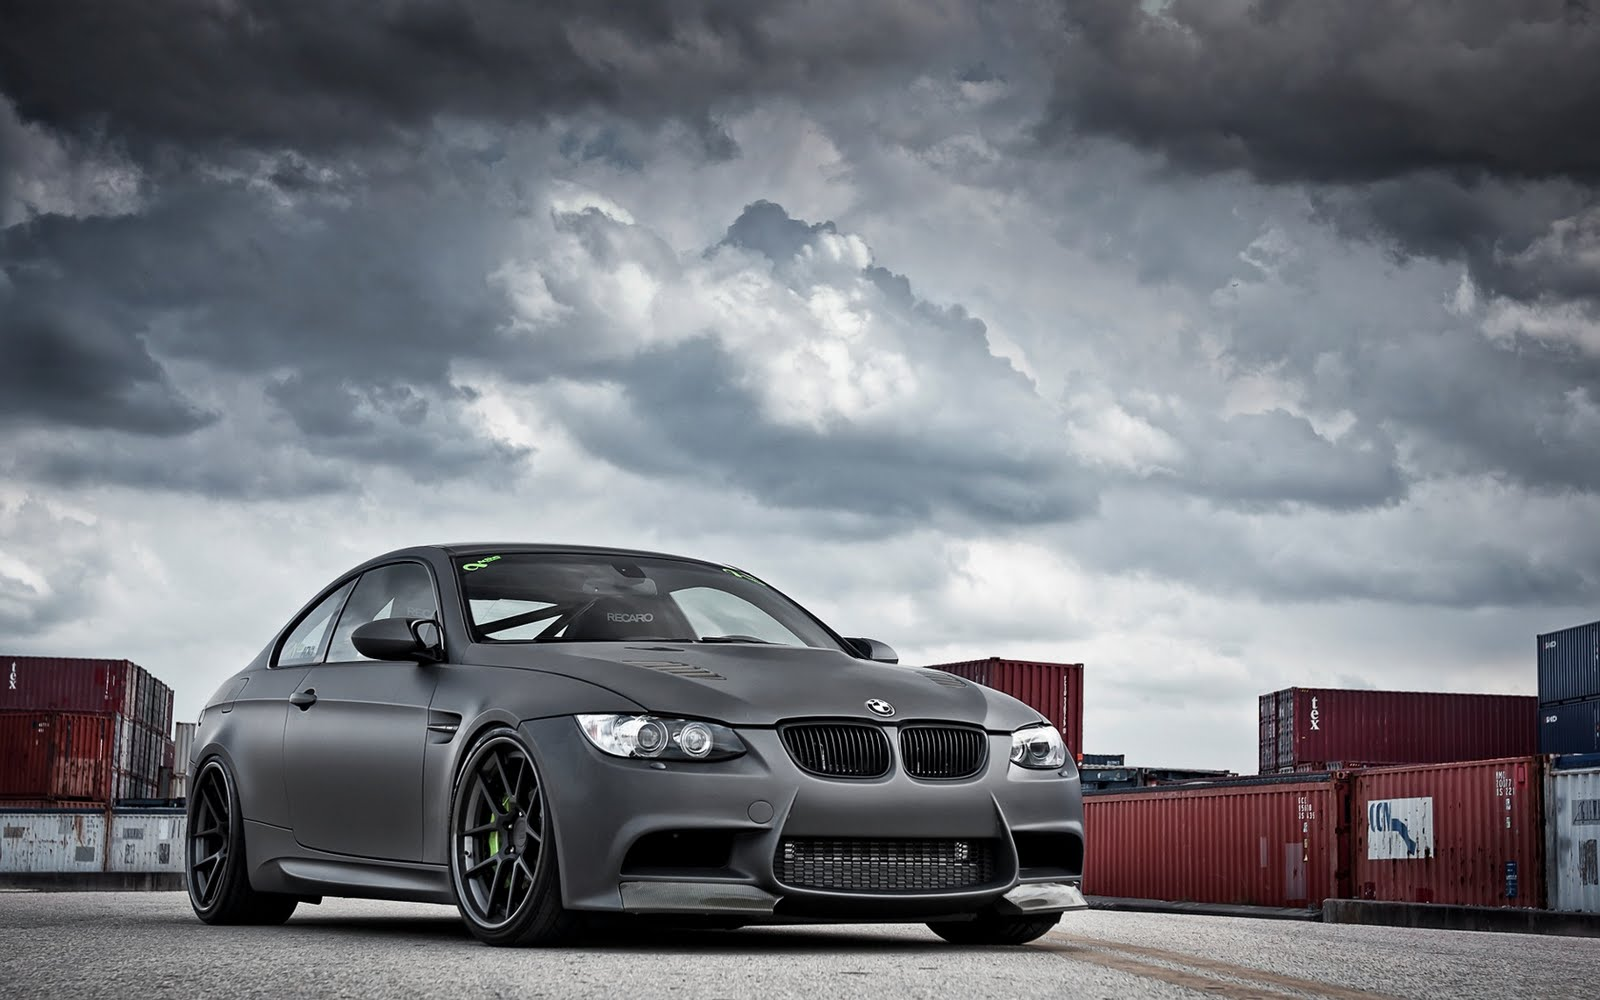 bmw m3 auto hd wallpaper wallpaper full hd wallpapers